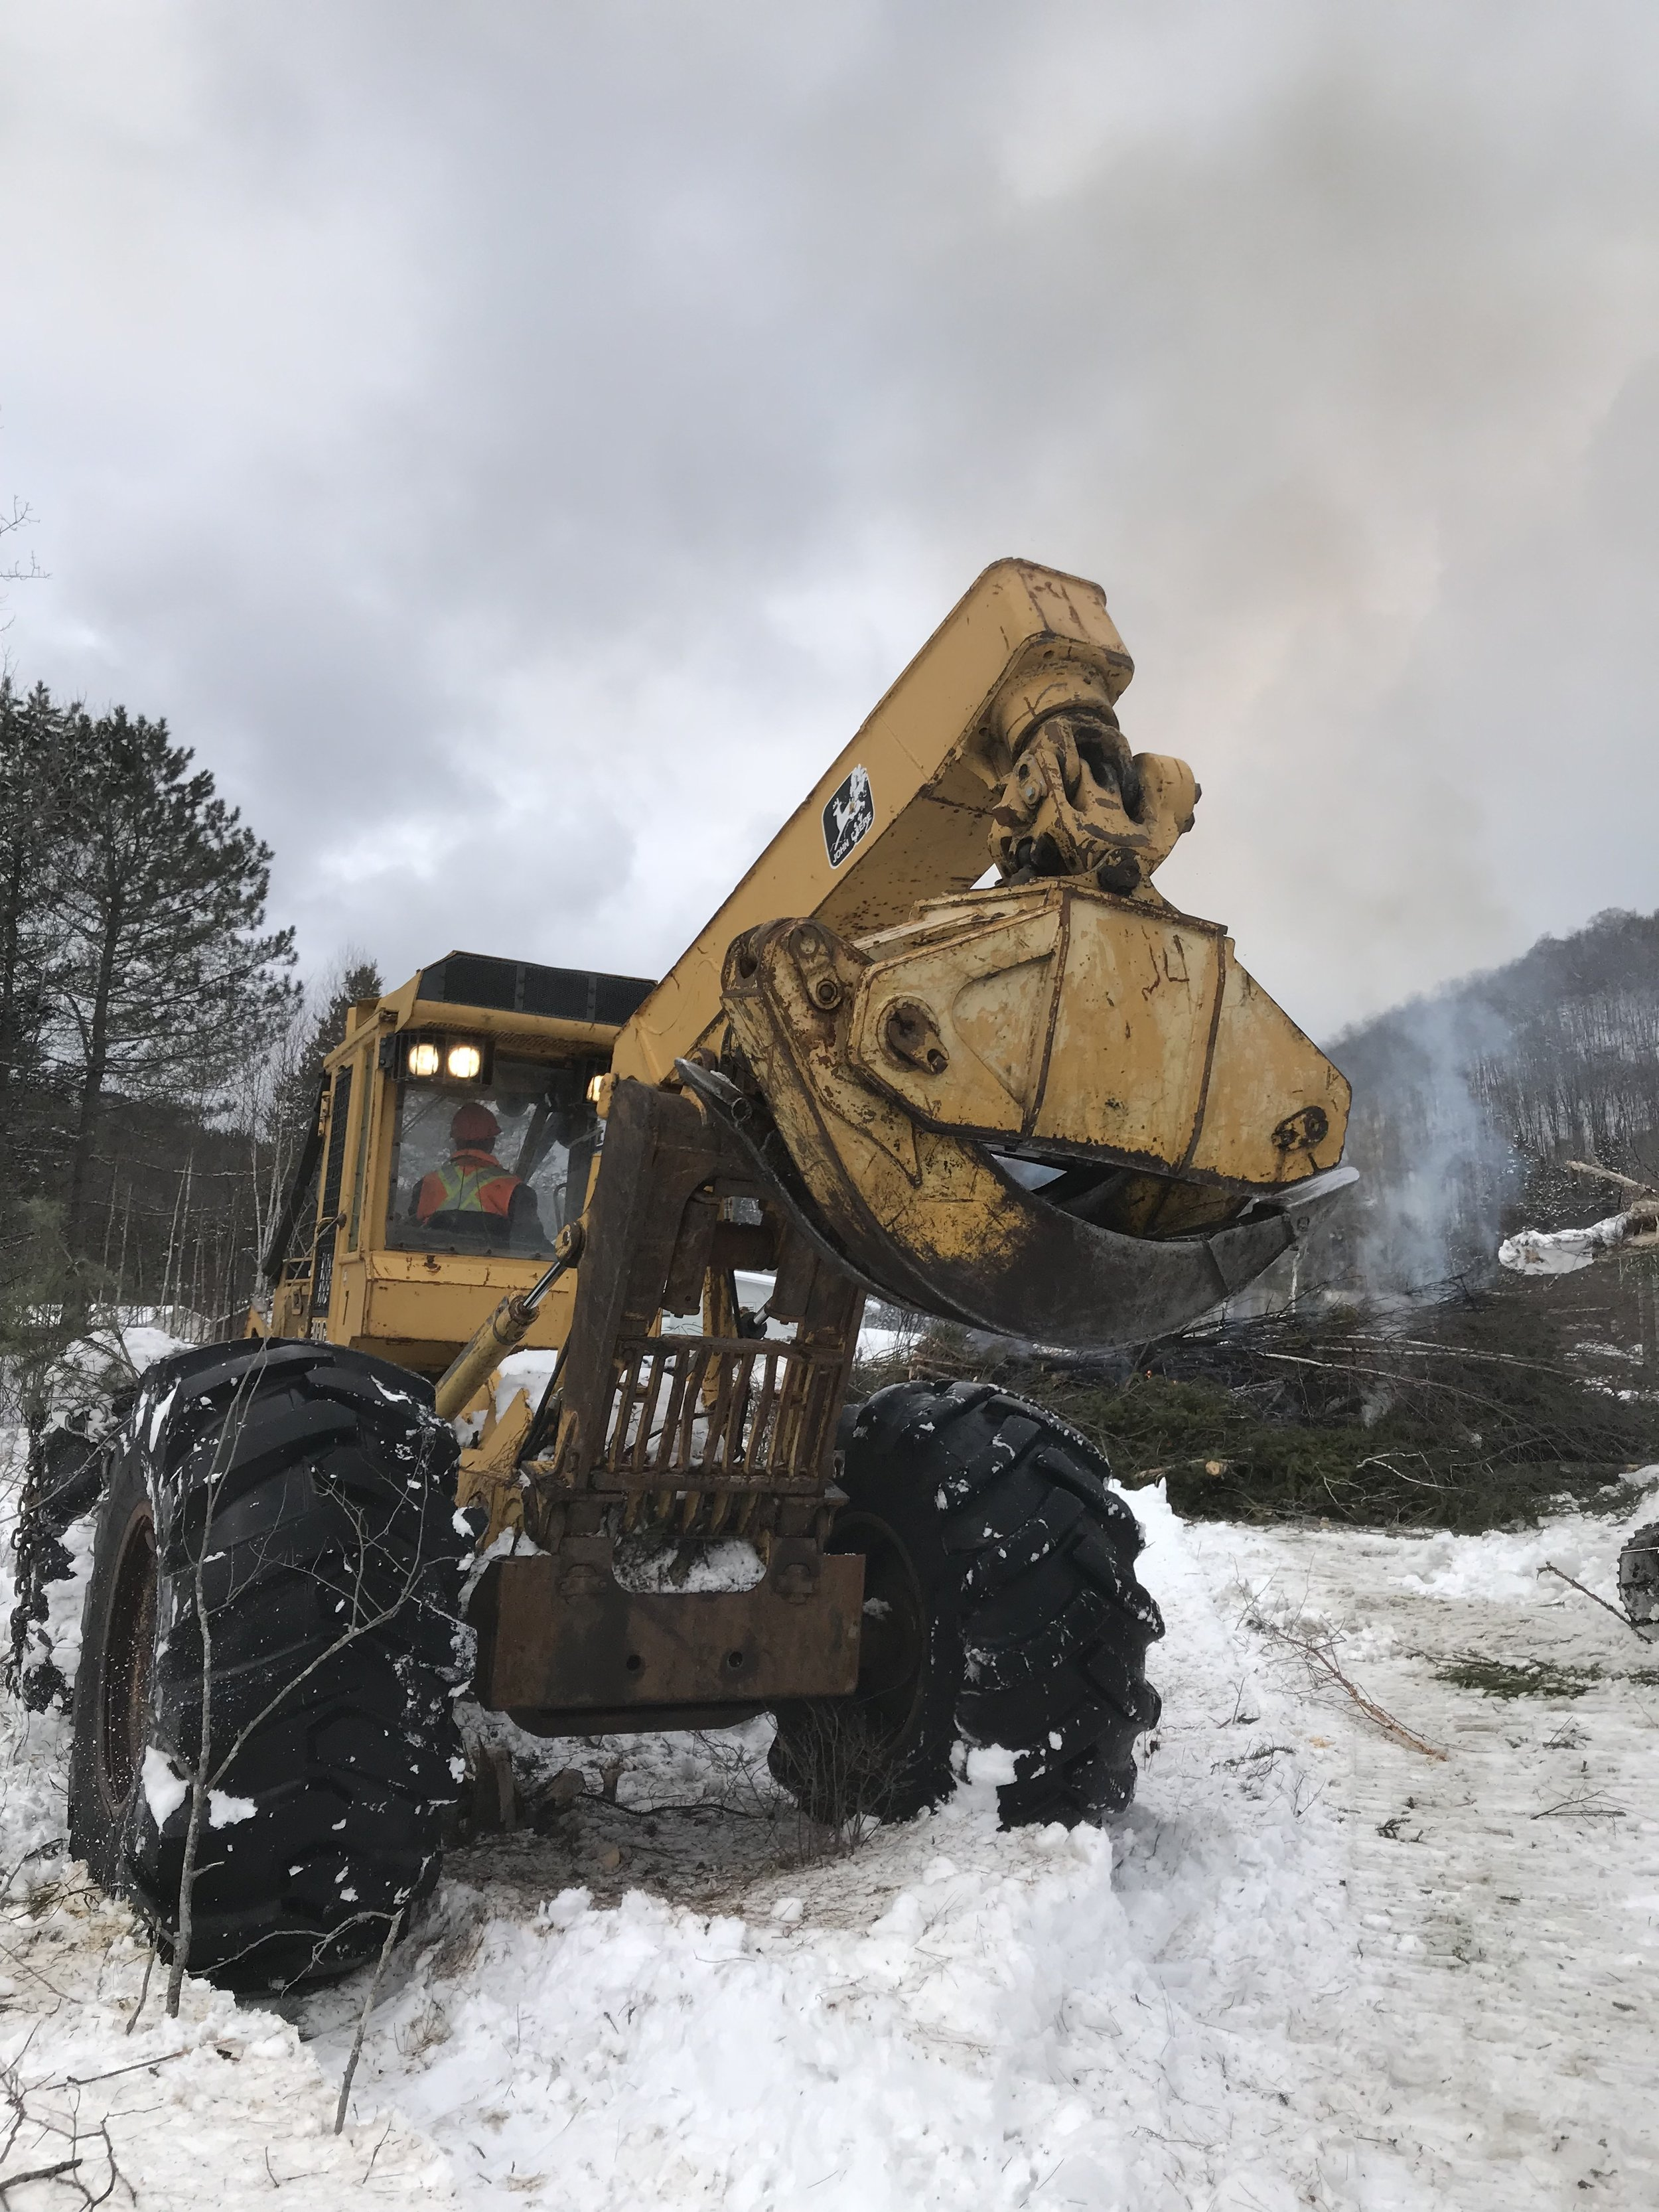 A variety of machinery and equipment is being utilized in the clearing of the site.